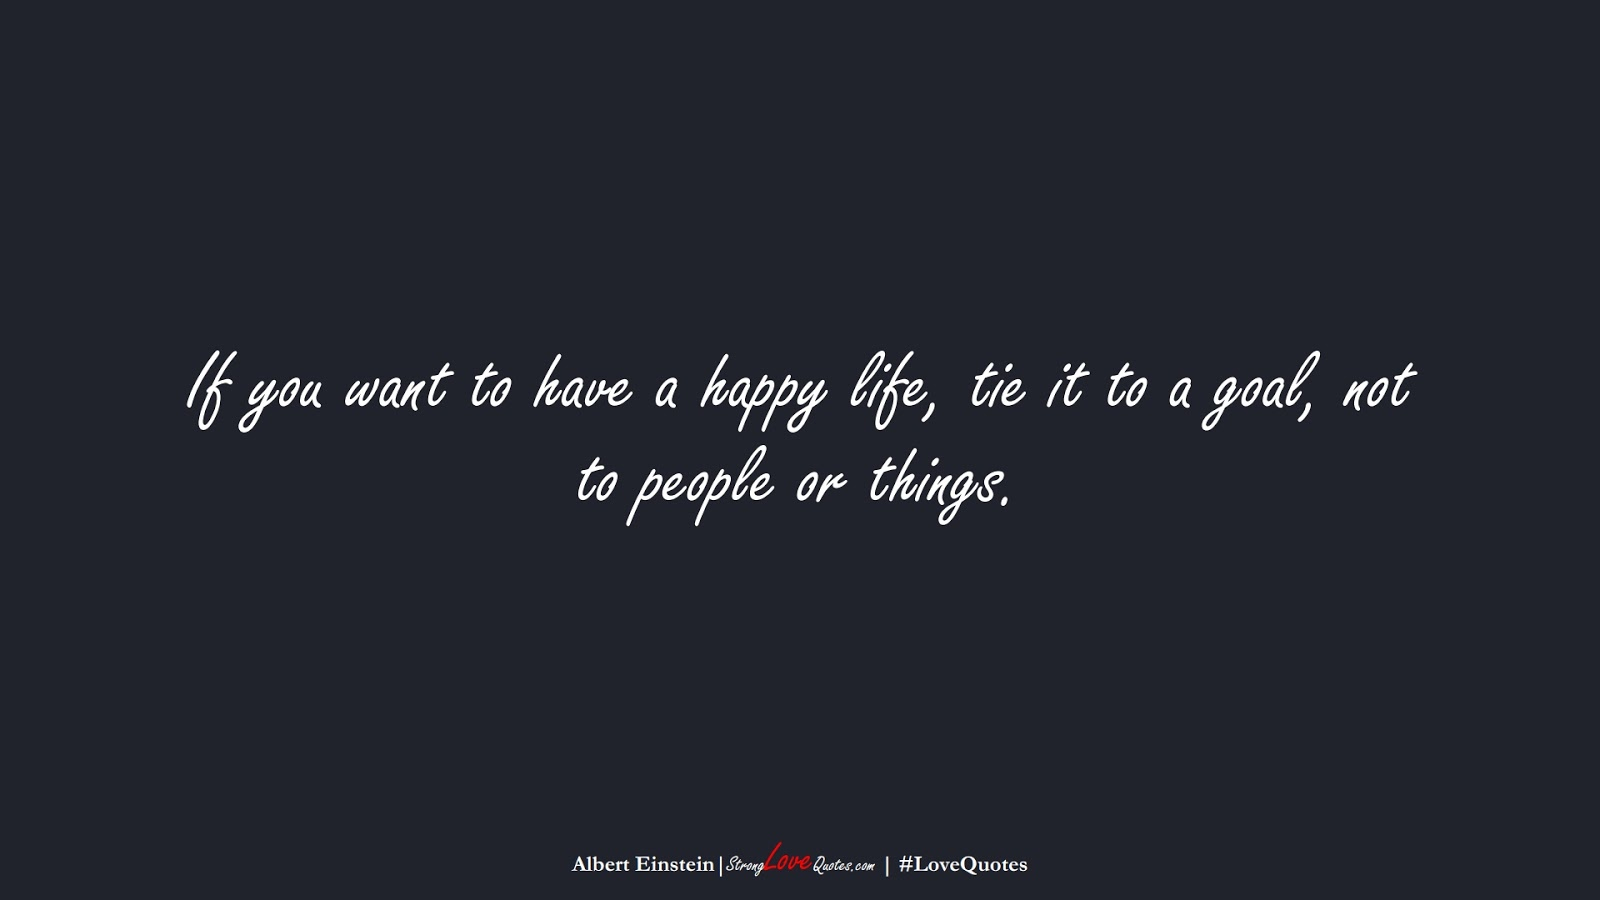 If you want to have a happy life, tie it to a goal, not to people or things. (Albert Einstein);  #LoveQuotes